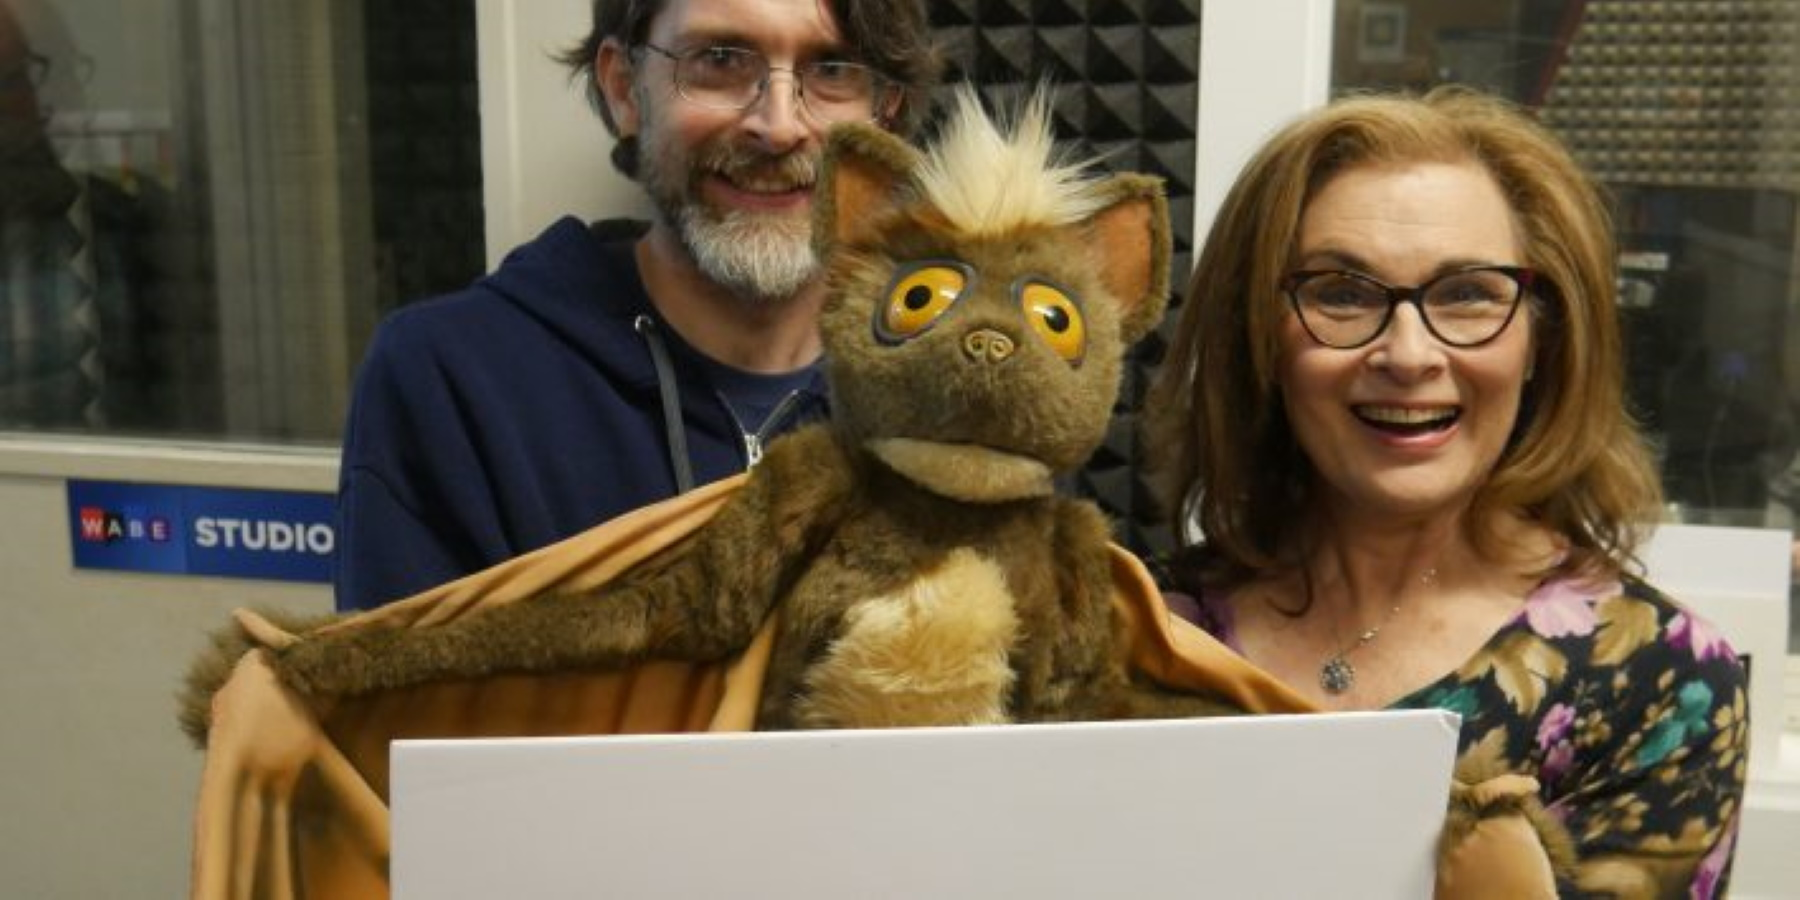 Jason Hines with a puppet, talks with Lois Reitzes